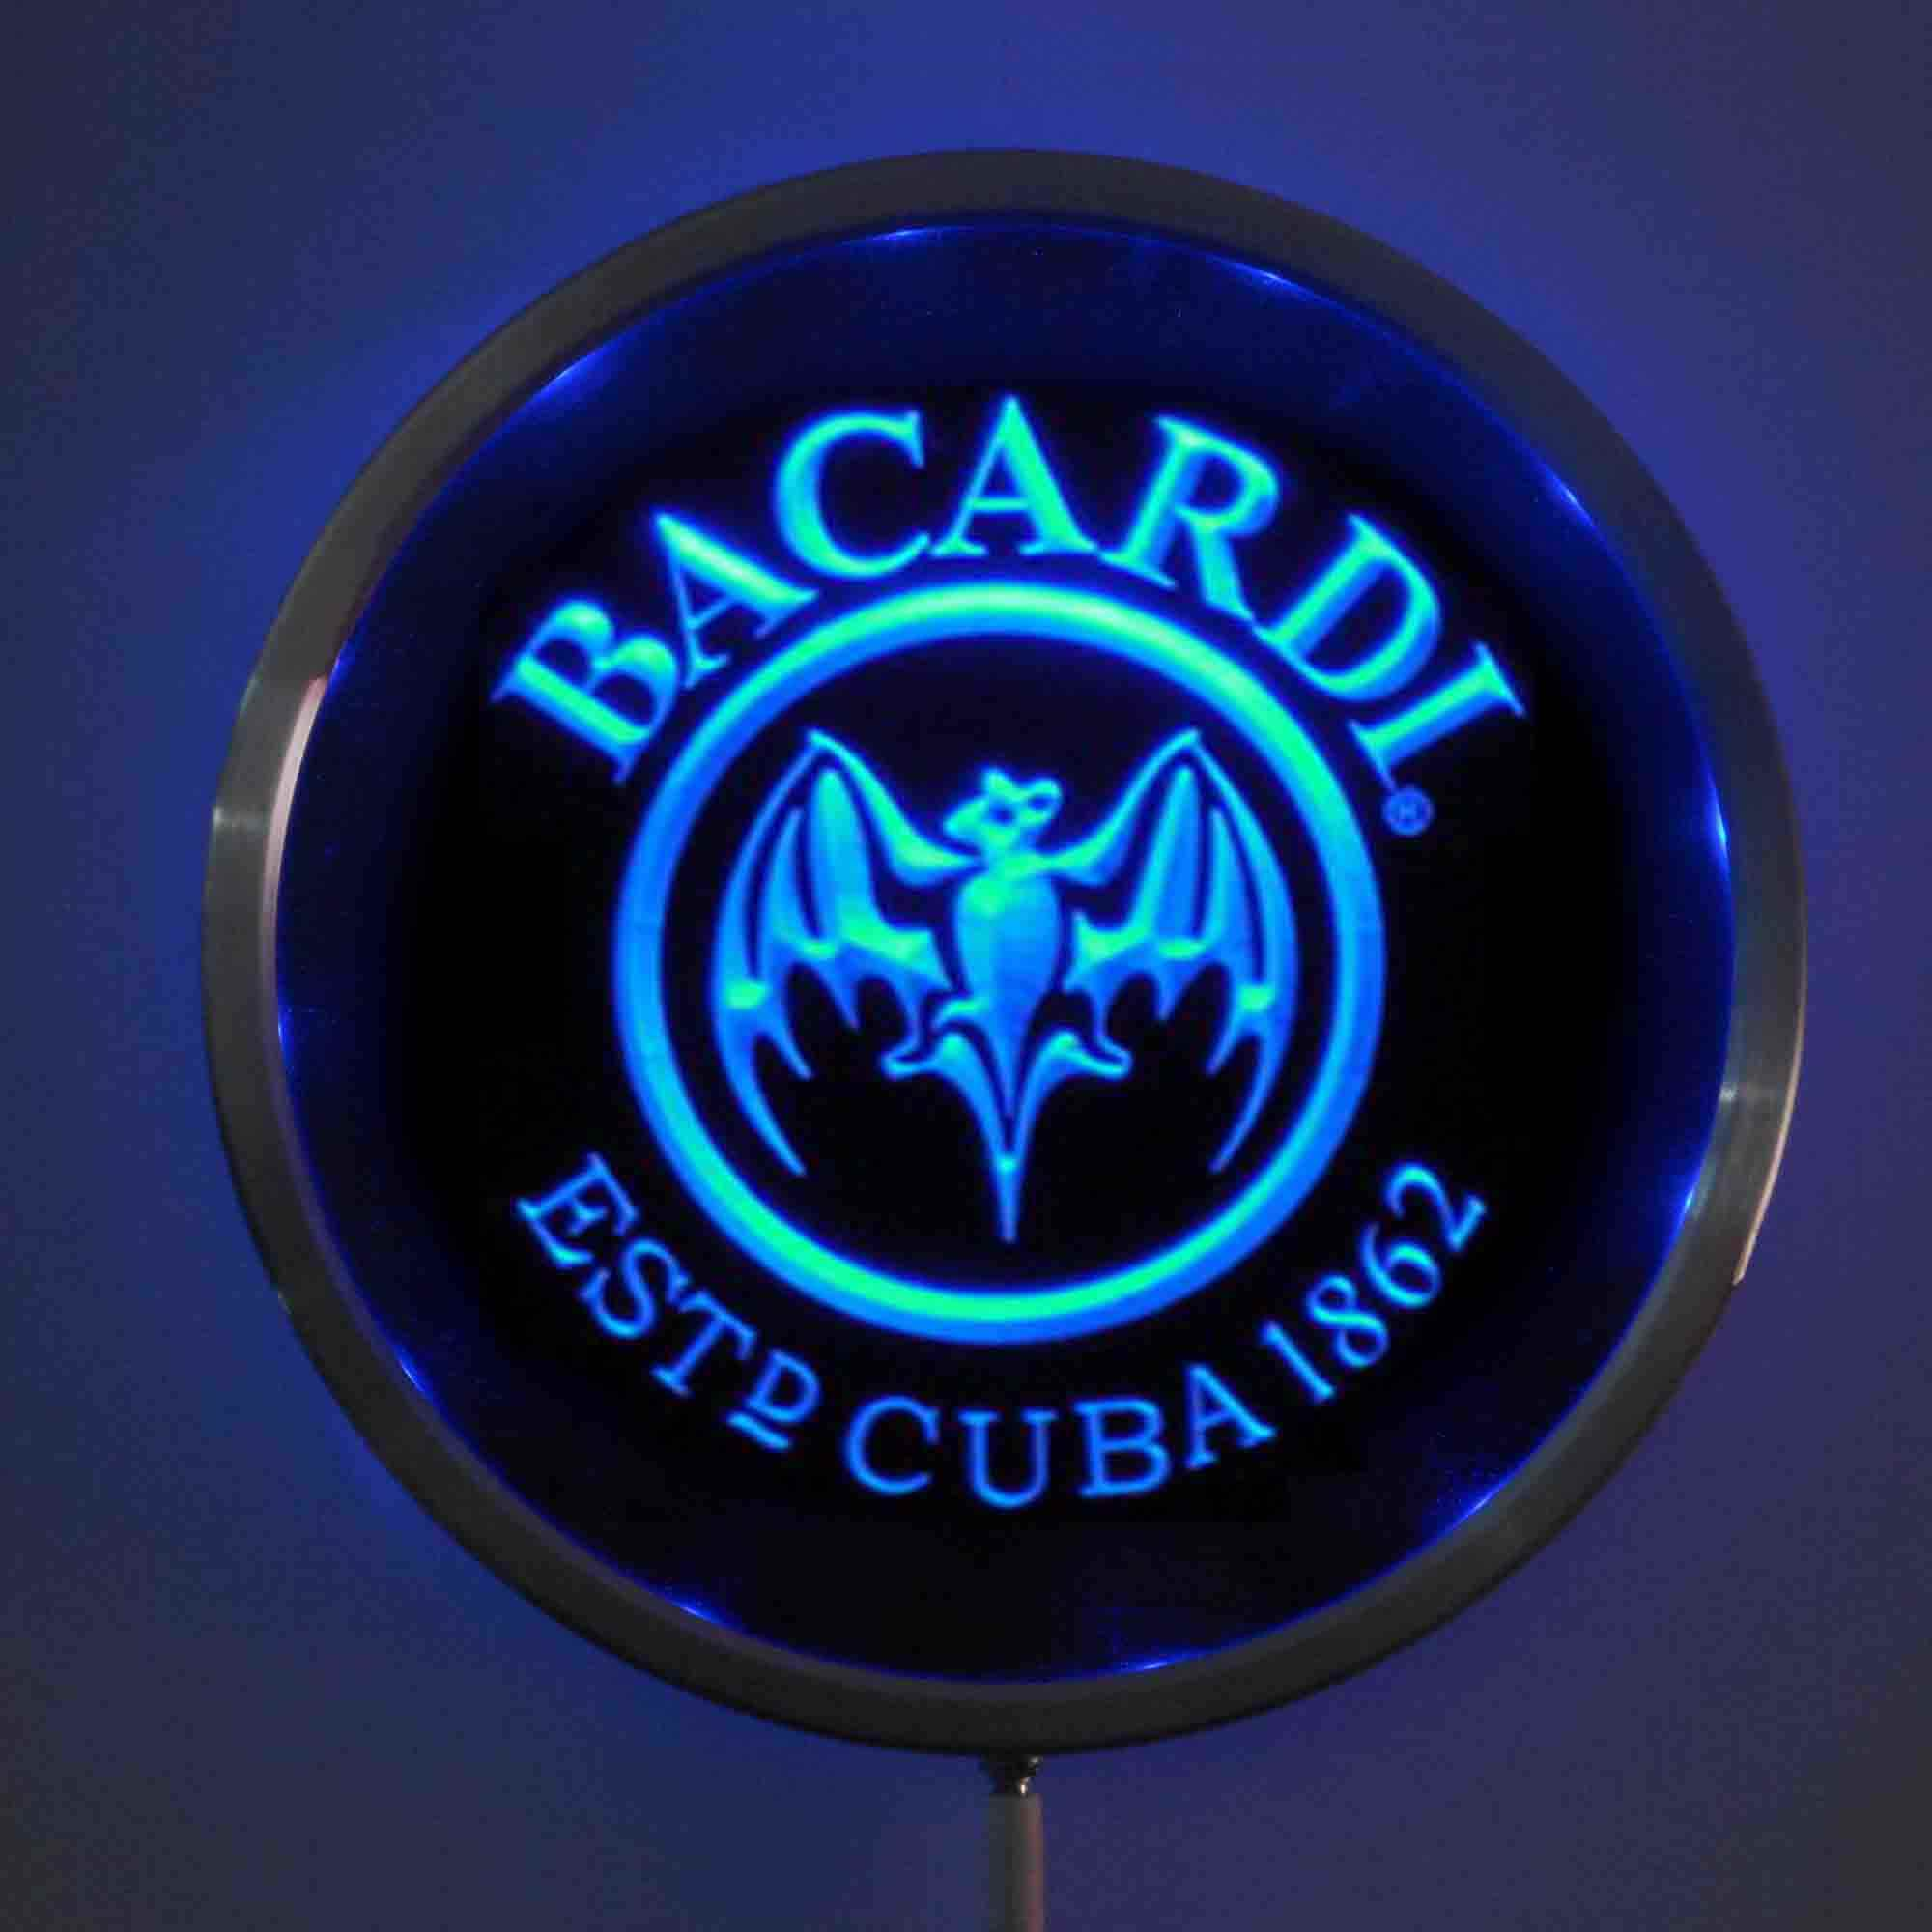 rs-a0078 Bacardi LED Neon Light Round Signss 25cm/ 10 Inch - Bar Signs with RGB Multi-Color Remote Wireless Control